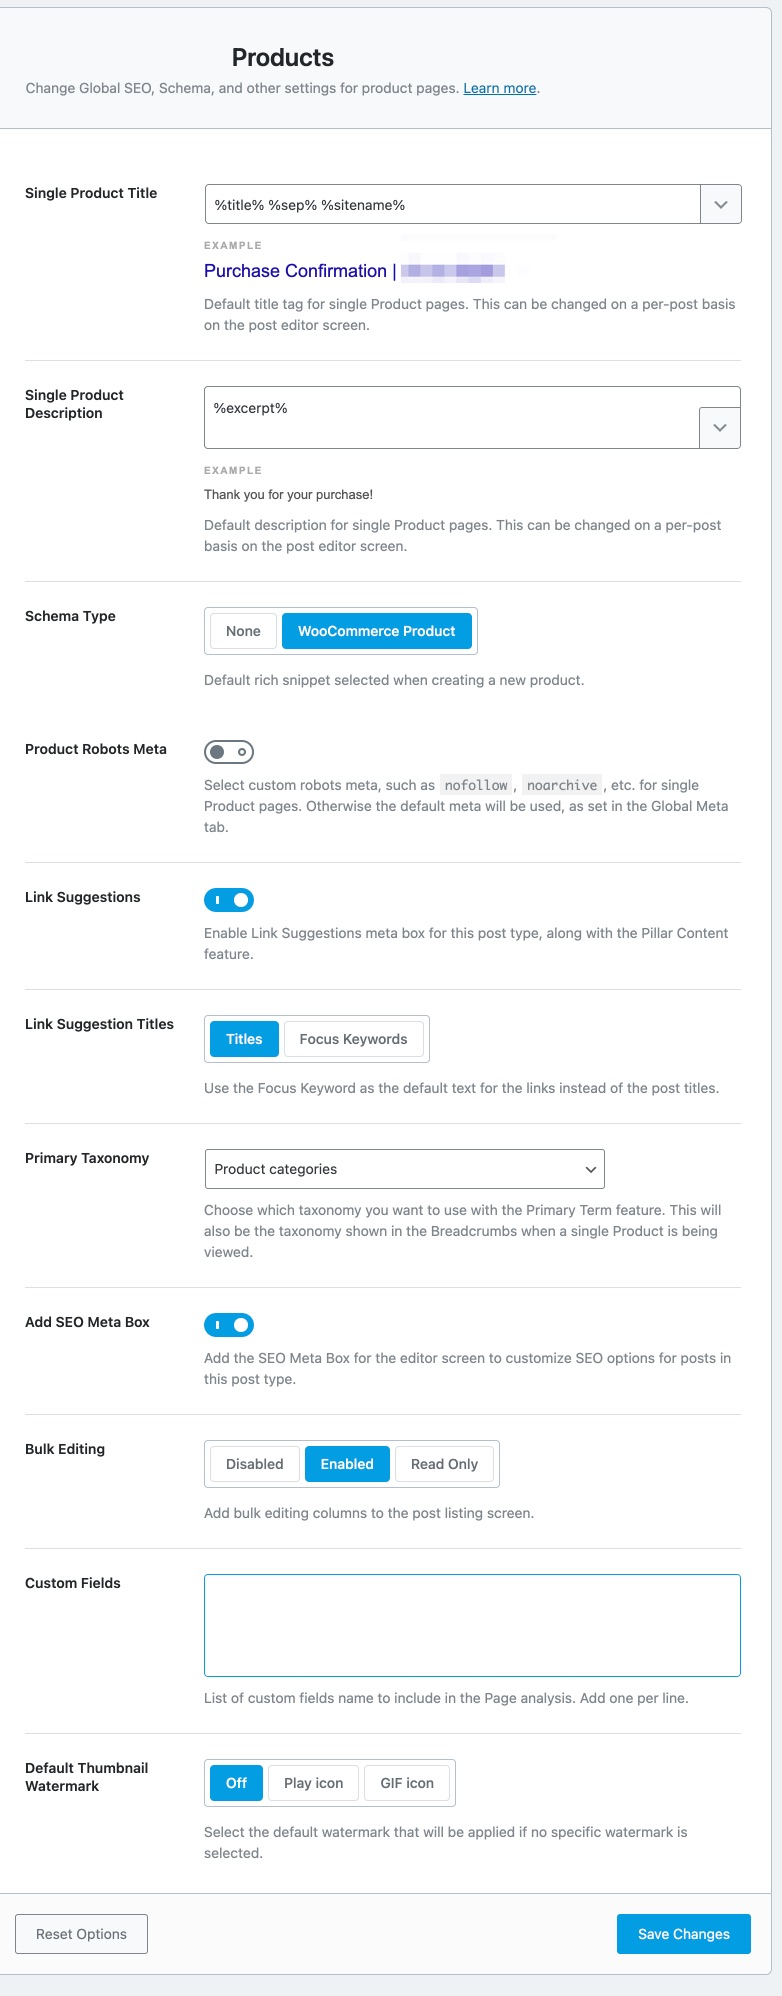 All settings in the products section